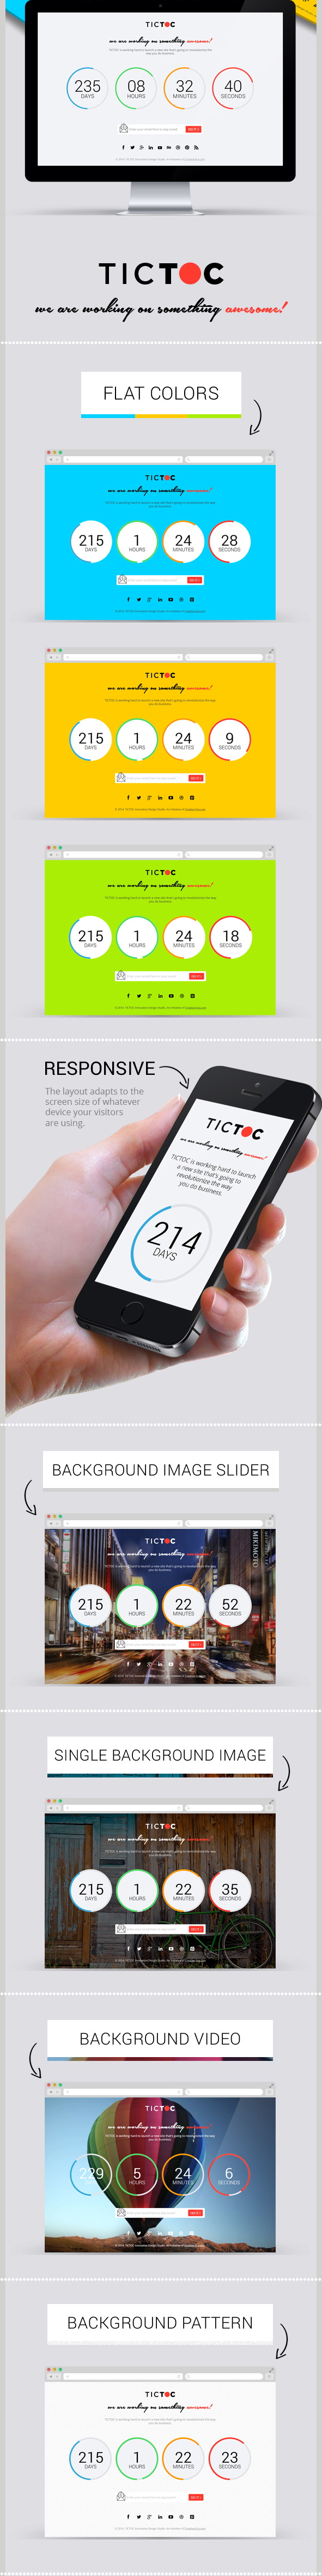 TICTOC coming soon countdown page is a clean, elegant, responsive, animated countdown coming soo ...